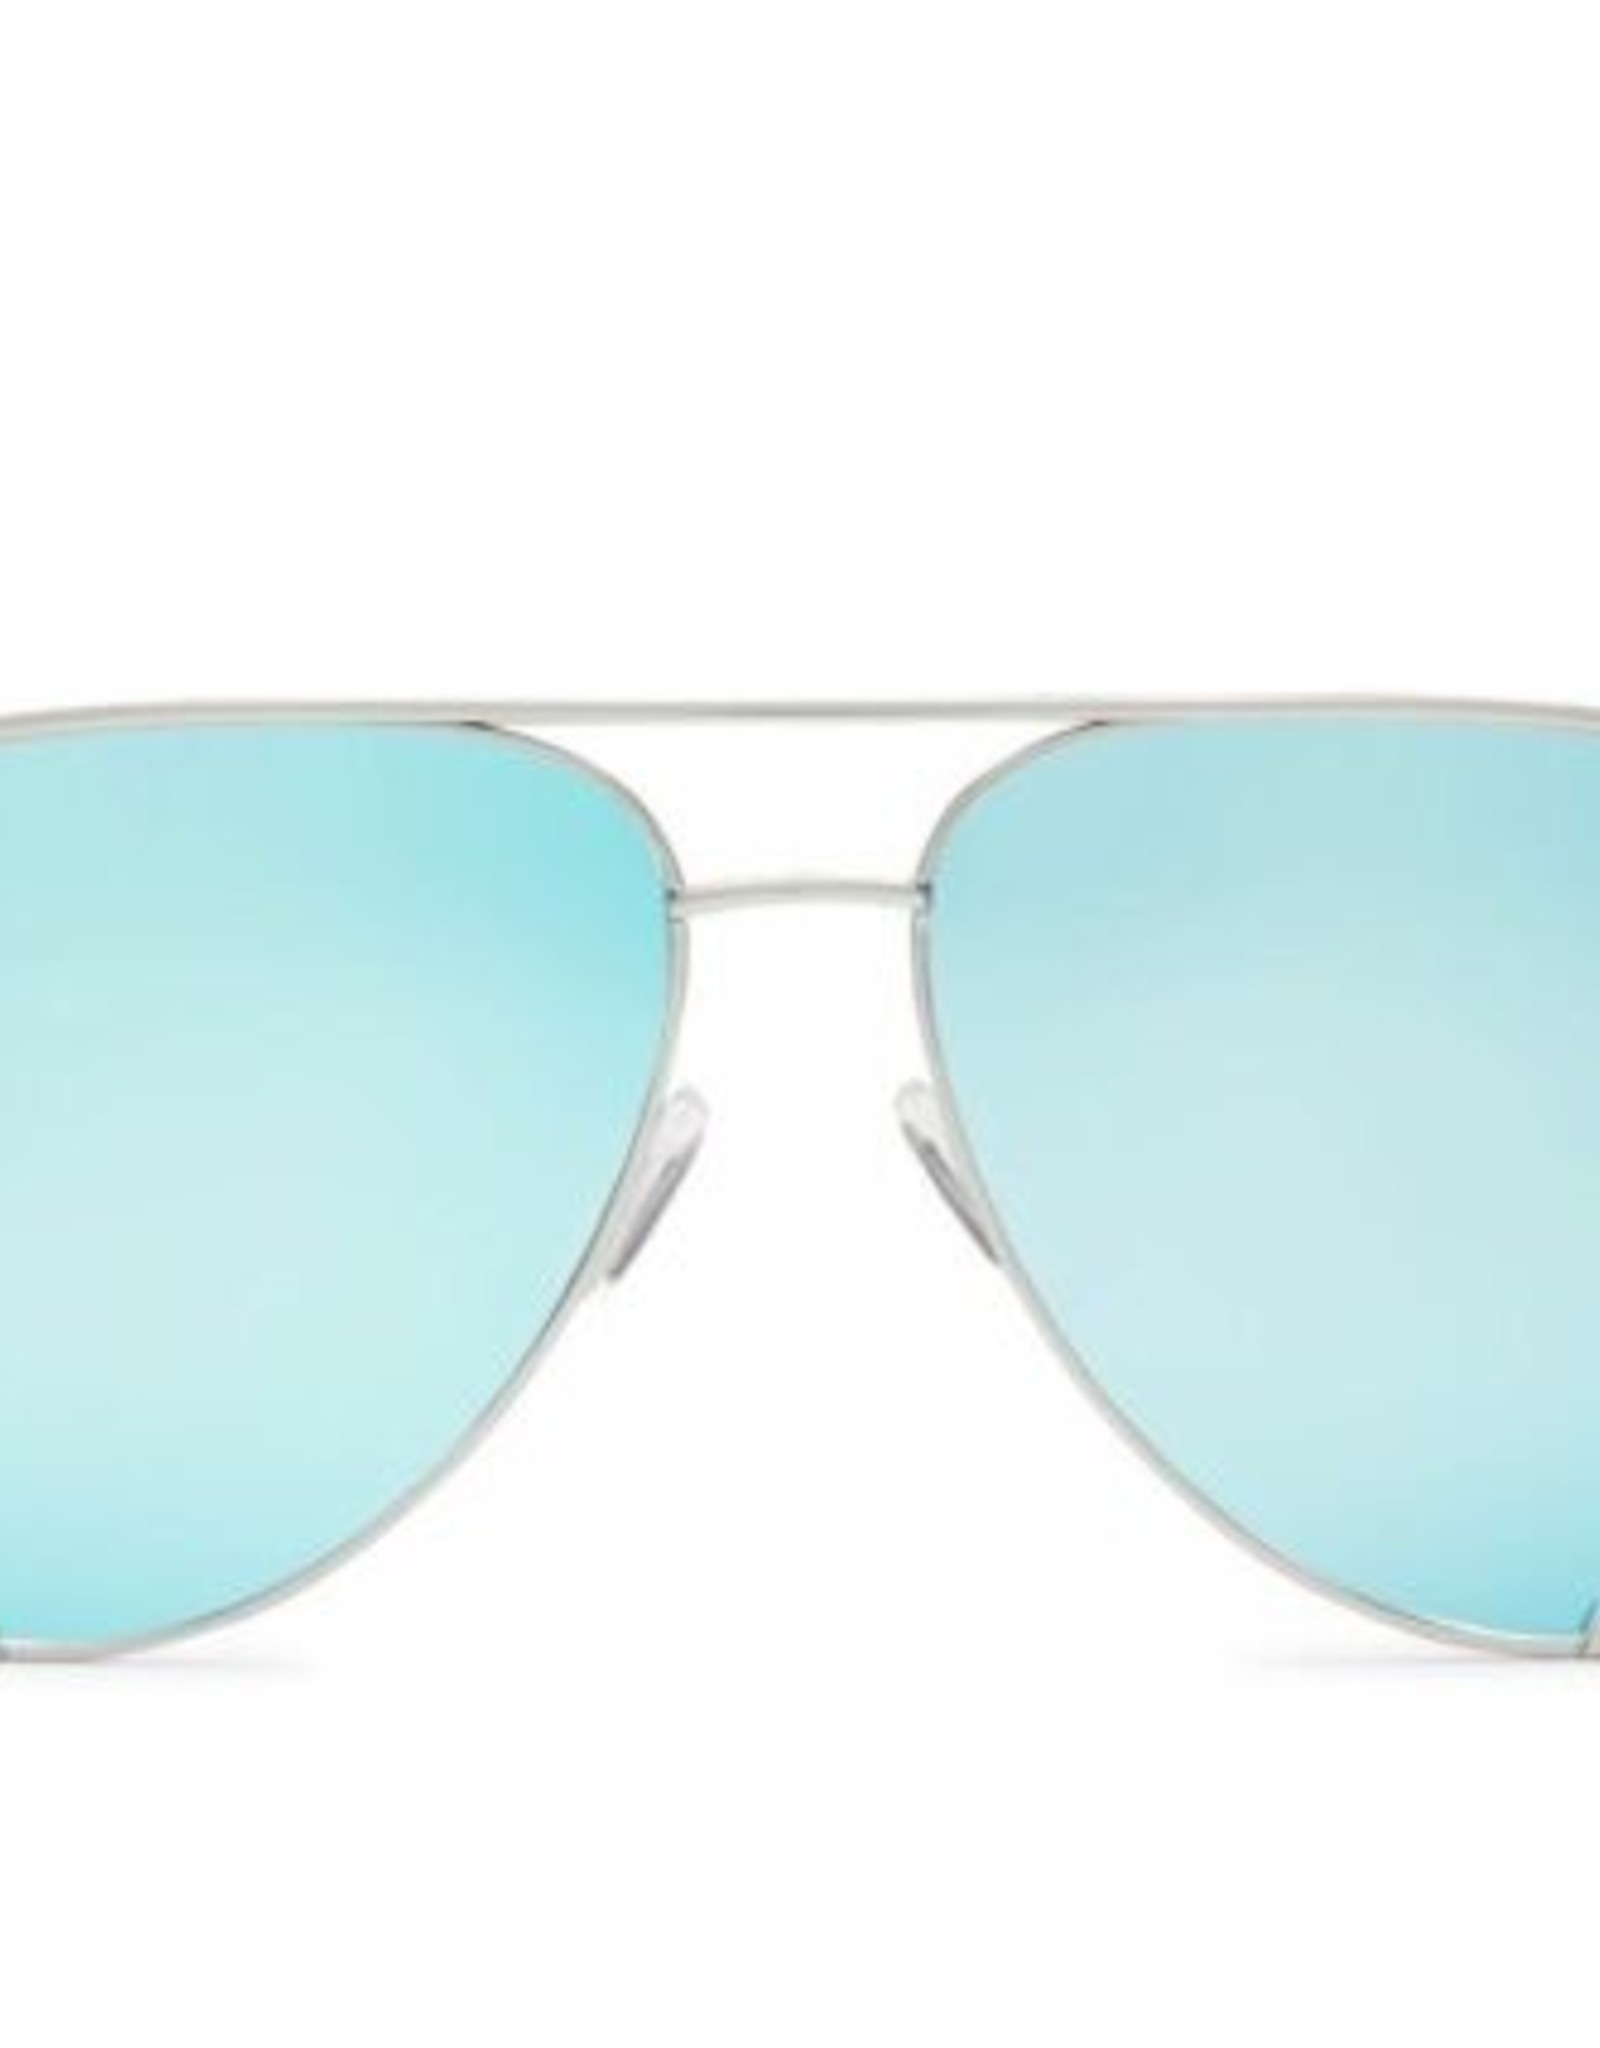 Quay Quay X Desi Perkins High Key Sunglasses Silver/Blue